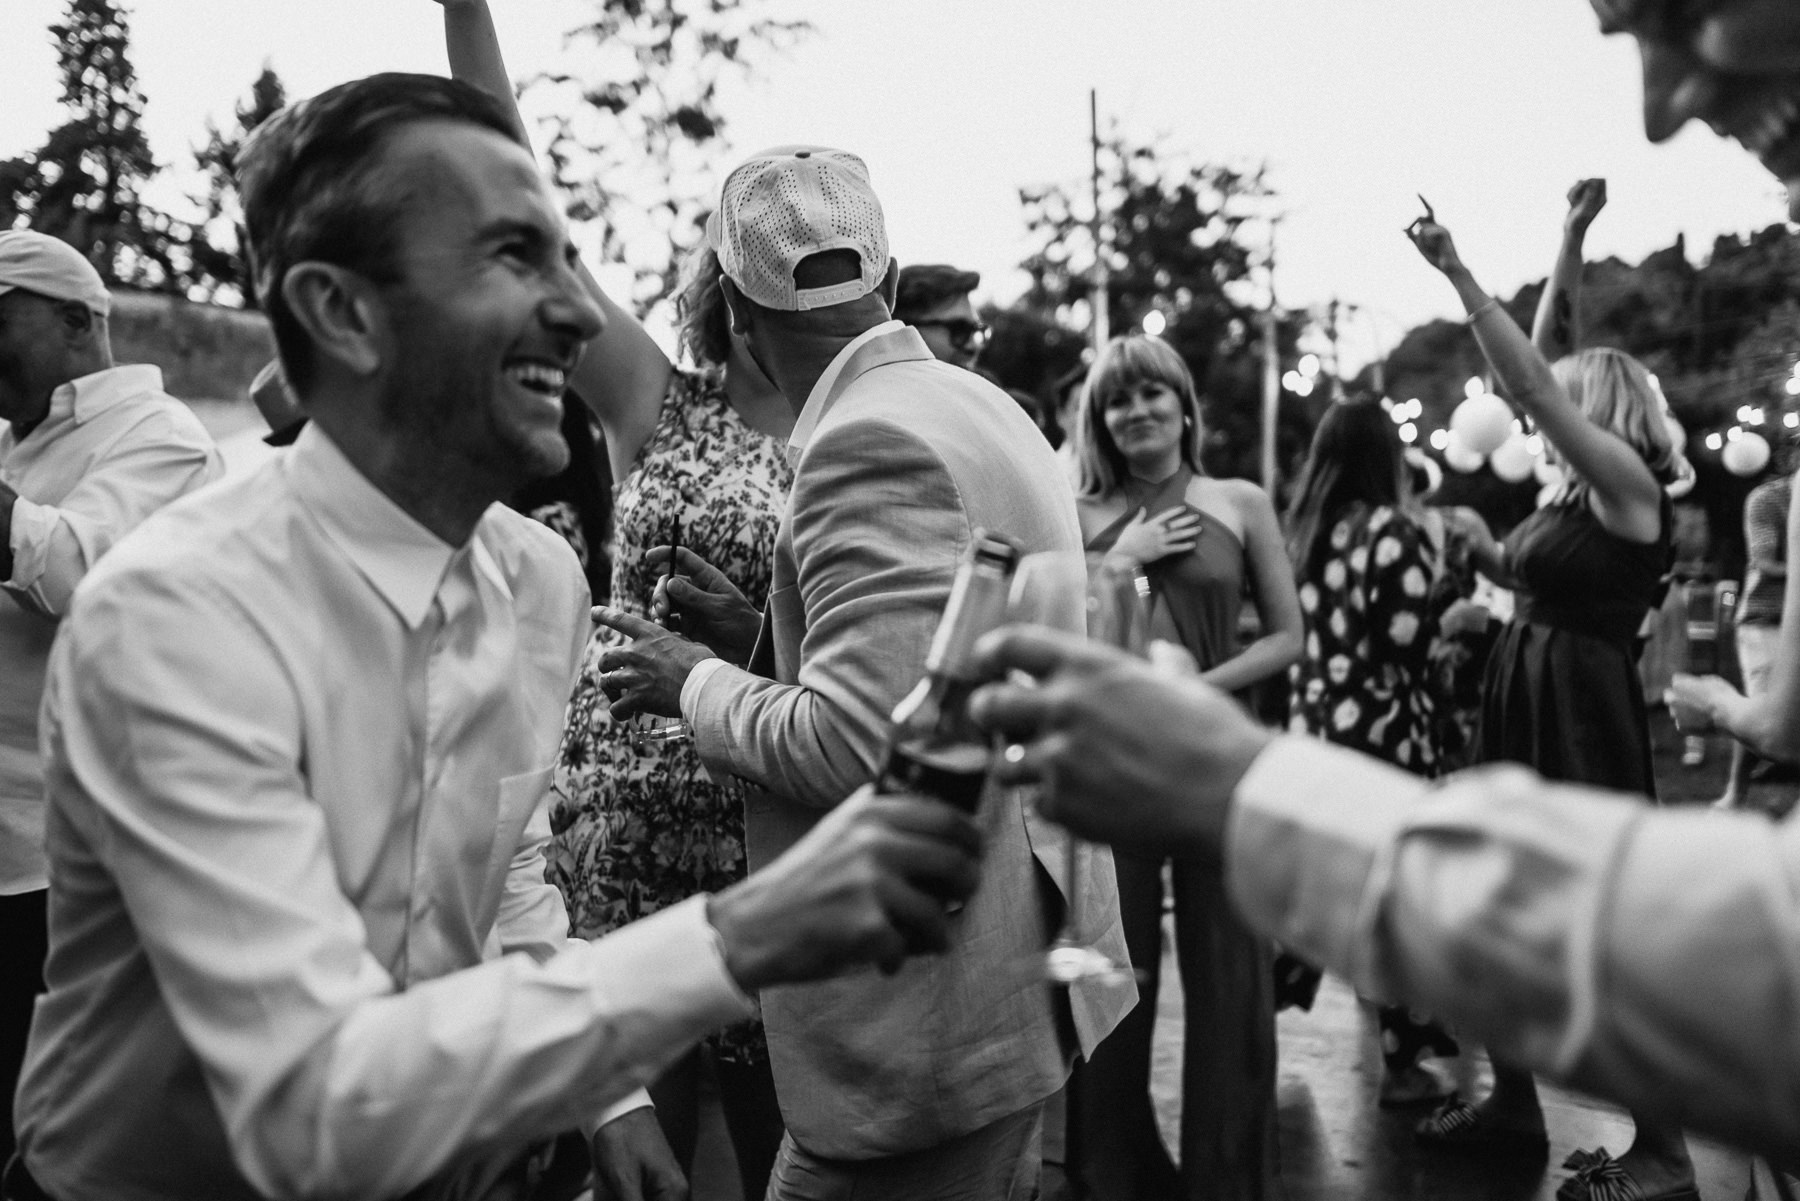 creative wedding photographer tuscany dance party dj set